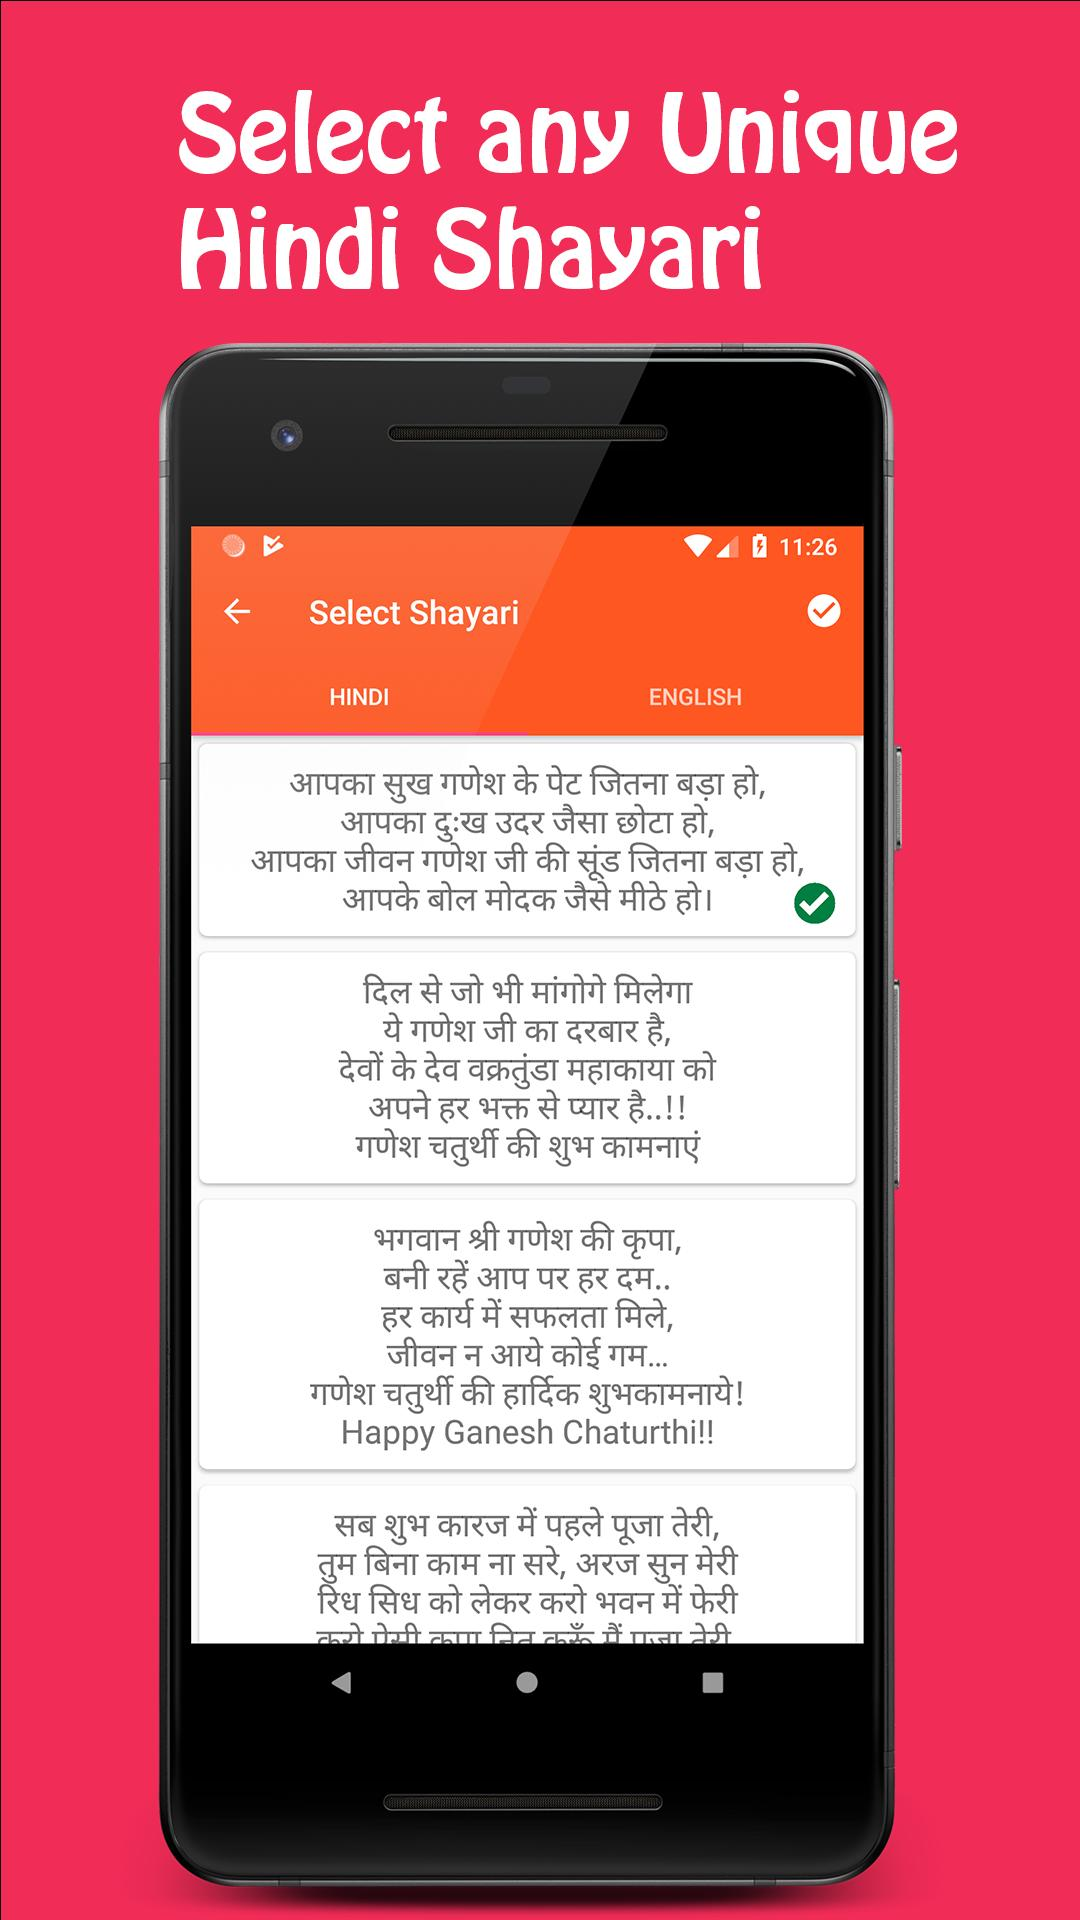 Ganesh Chaturthi Greeting Card Maker 2018 For Android Apk